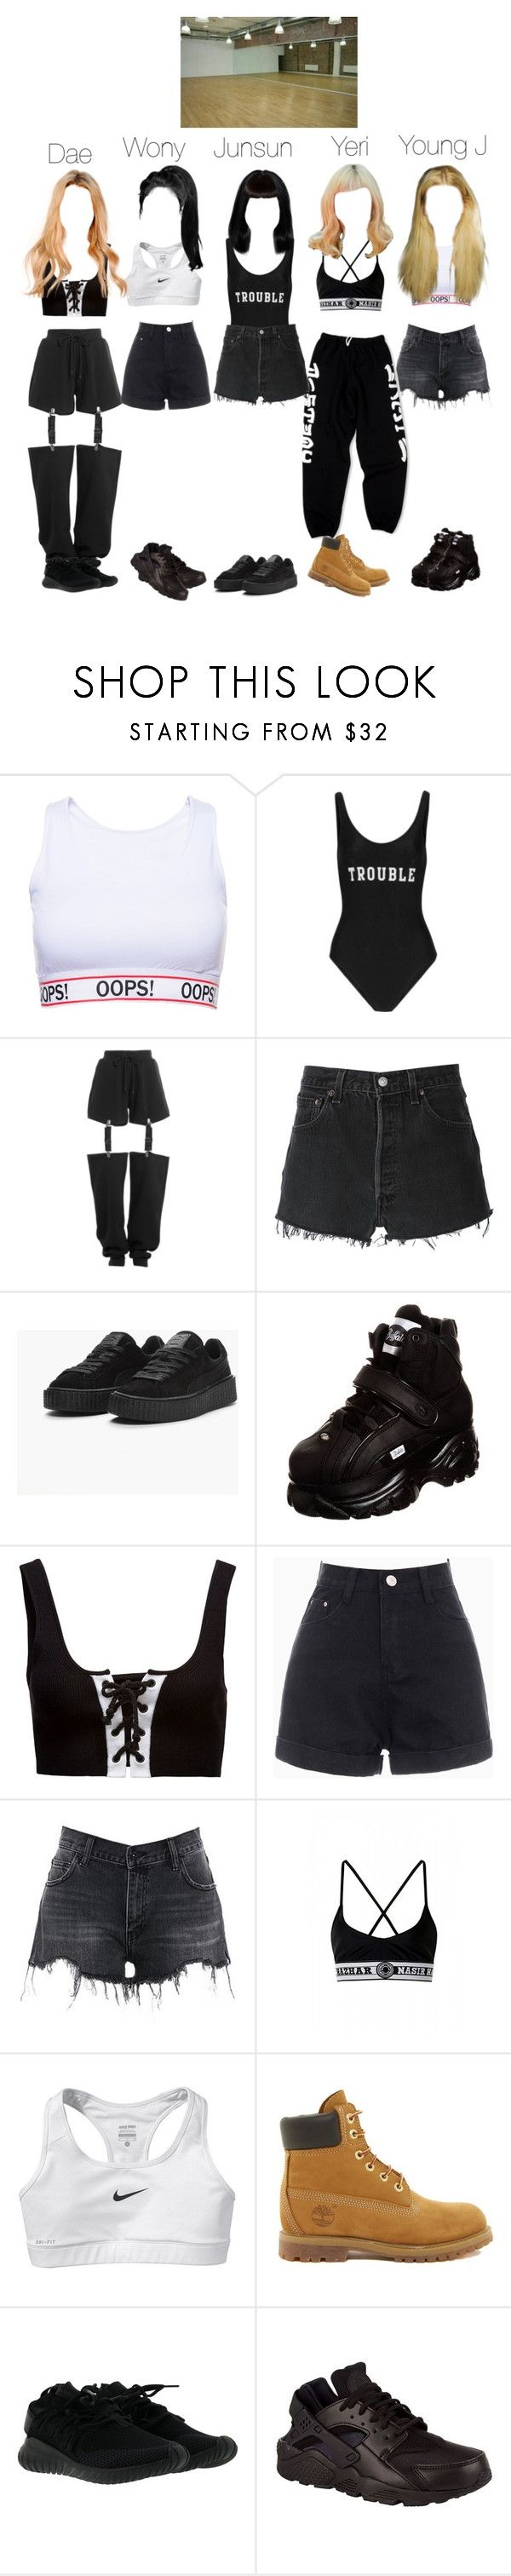 """'I Miss You' 